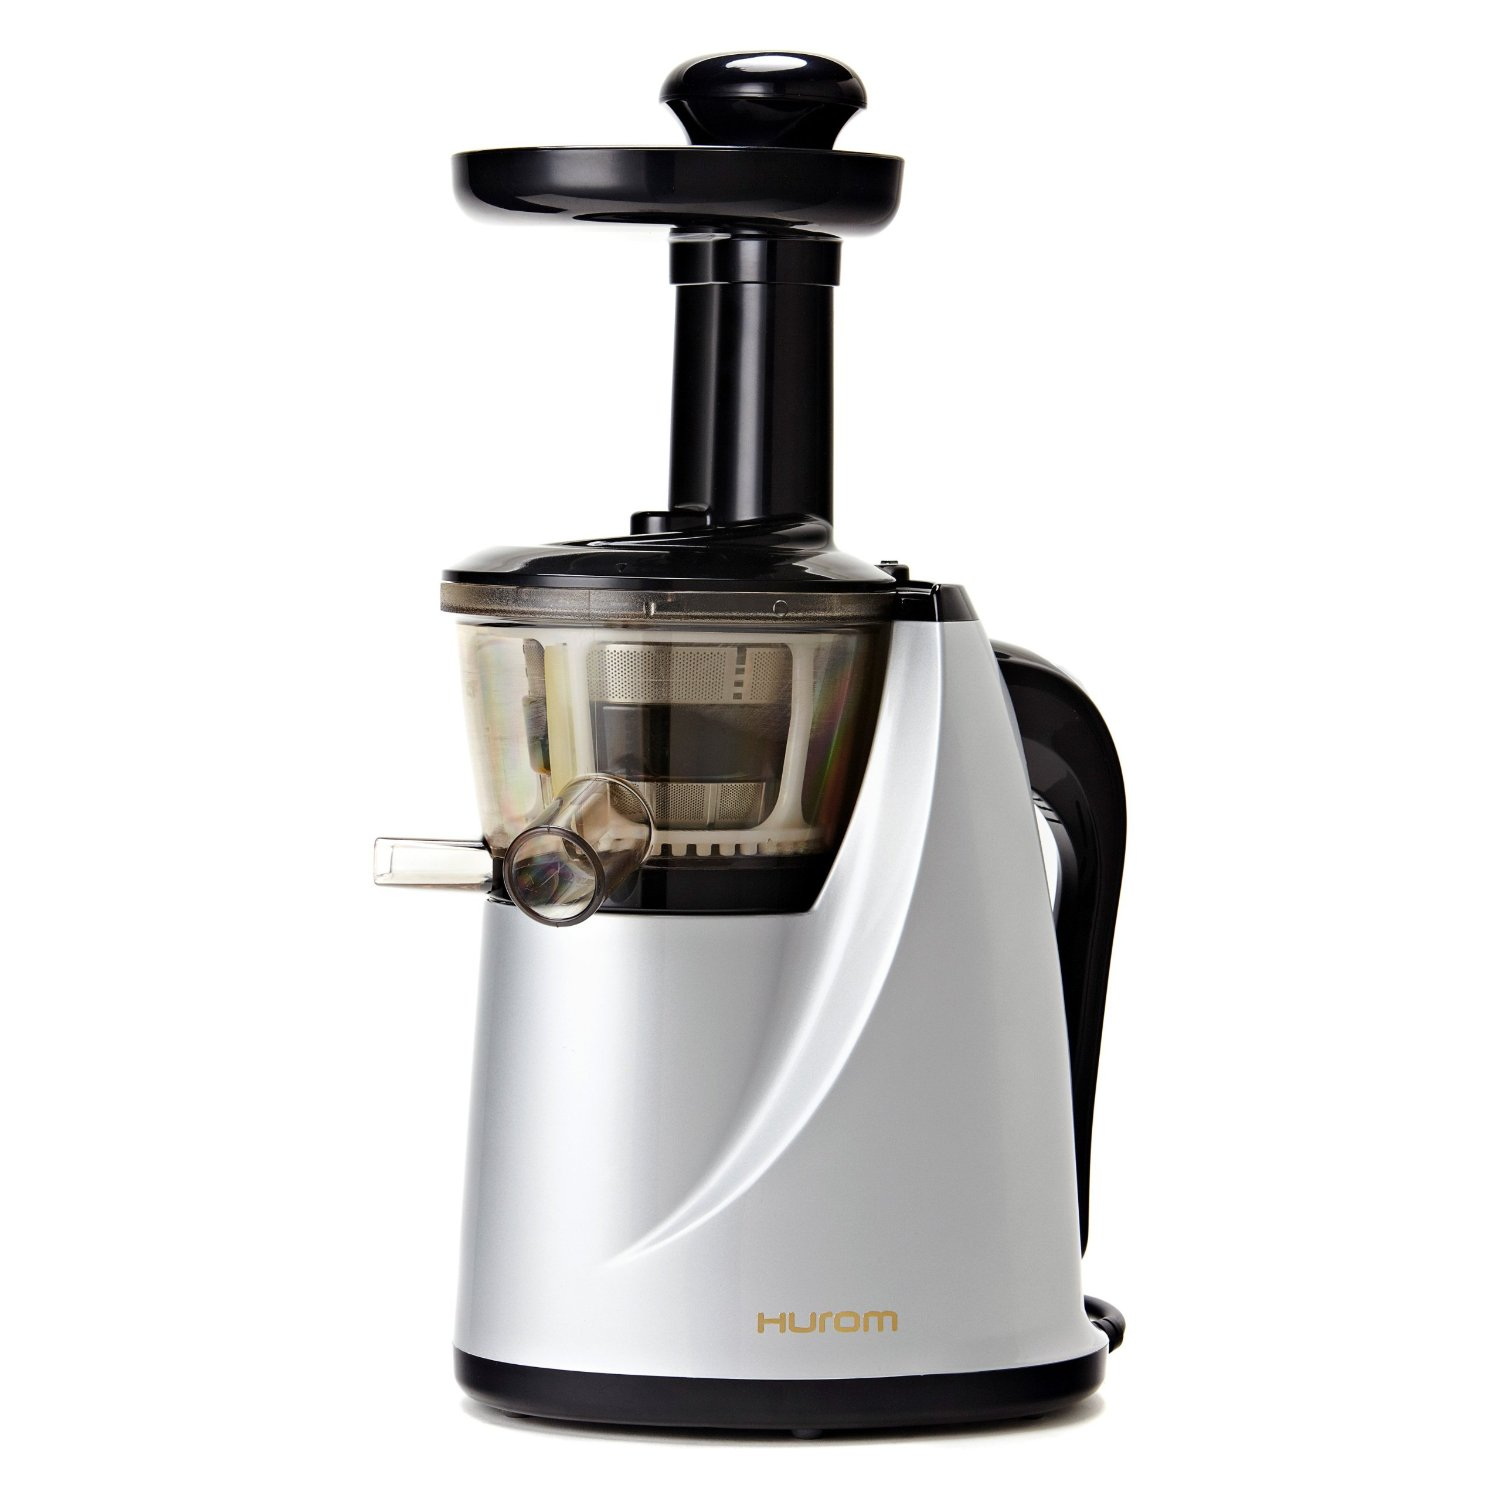 Slow Juicer Handbetrieb : Hurom HU-100 Masticating Slow Juicer Review - Best Cold Press Juicers